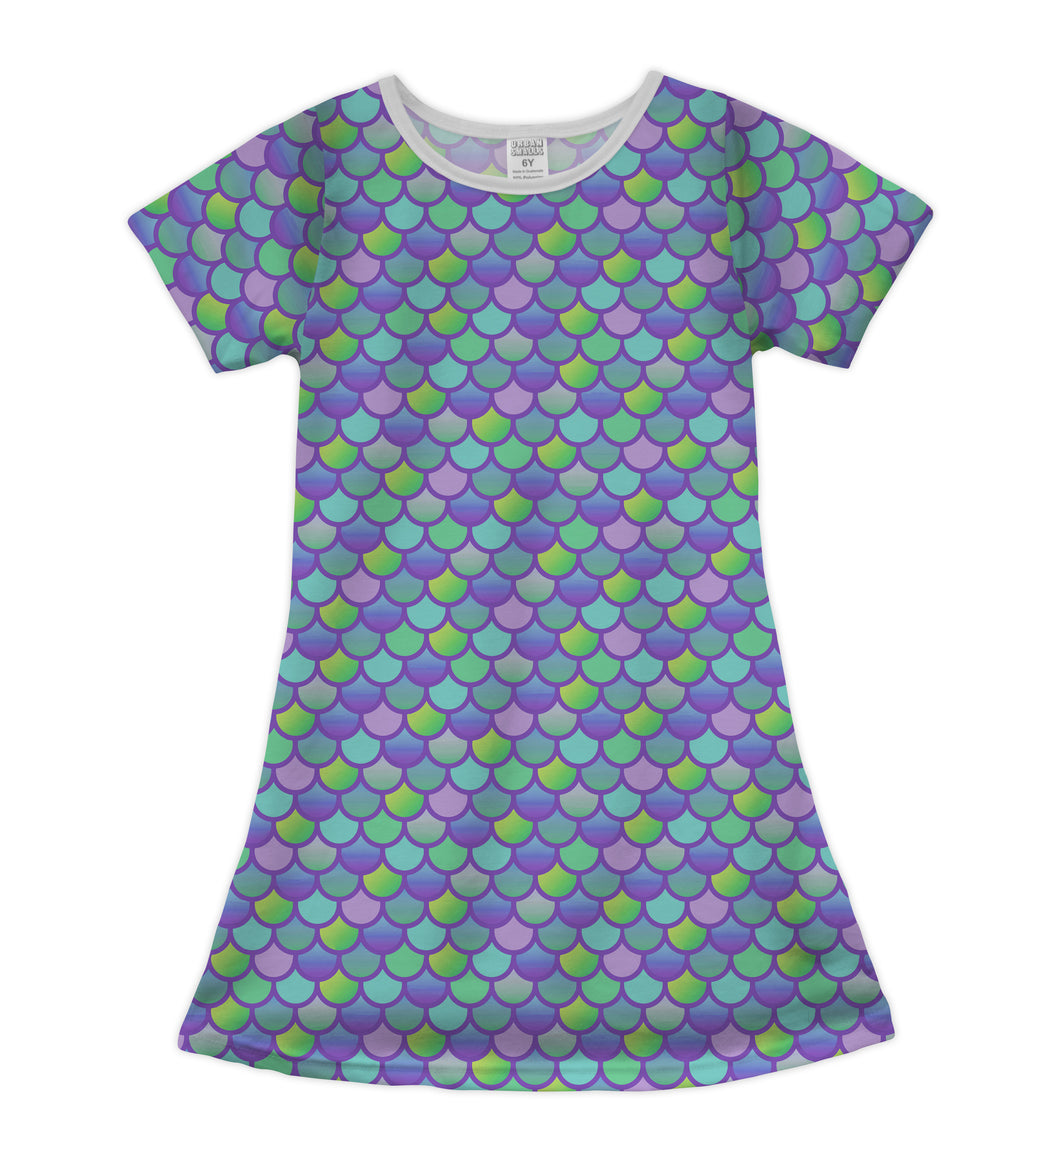 Lavender & Green Mermaid Scales Shift Dress